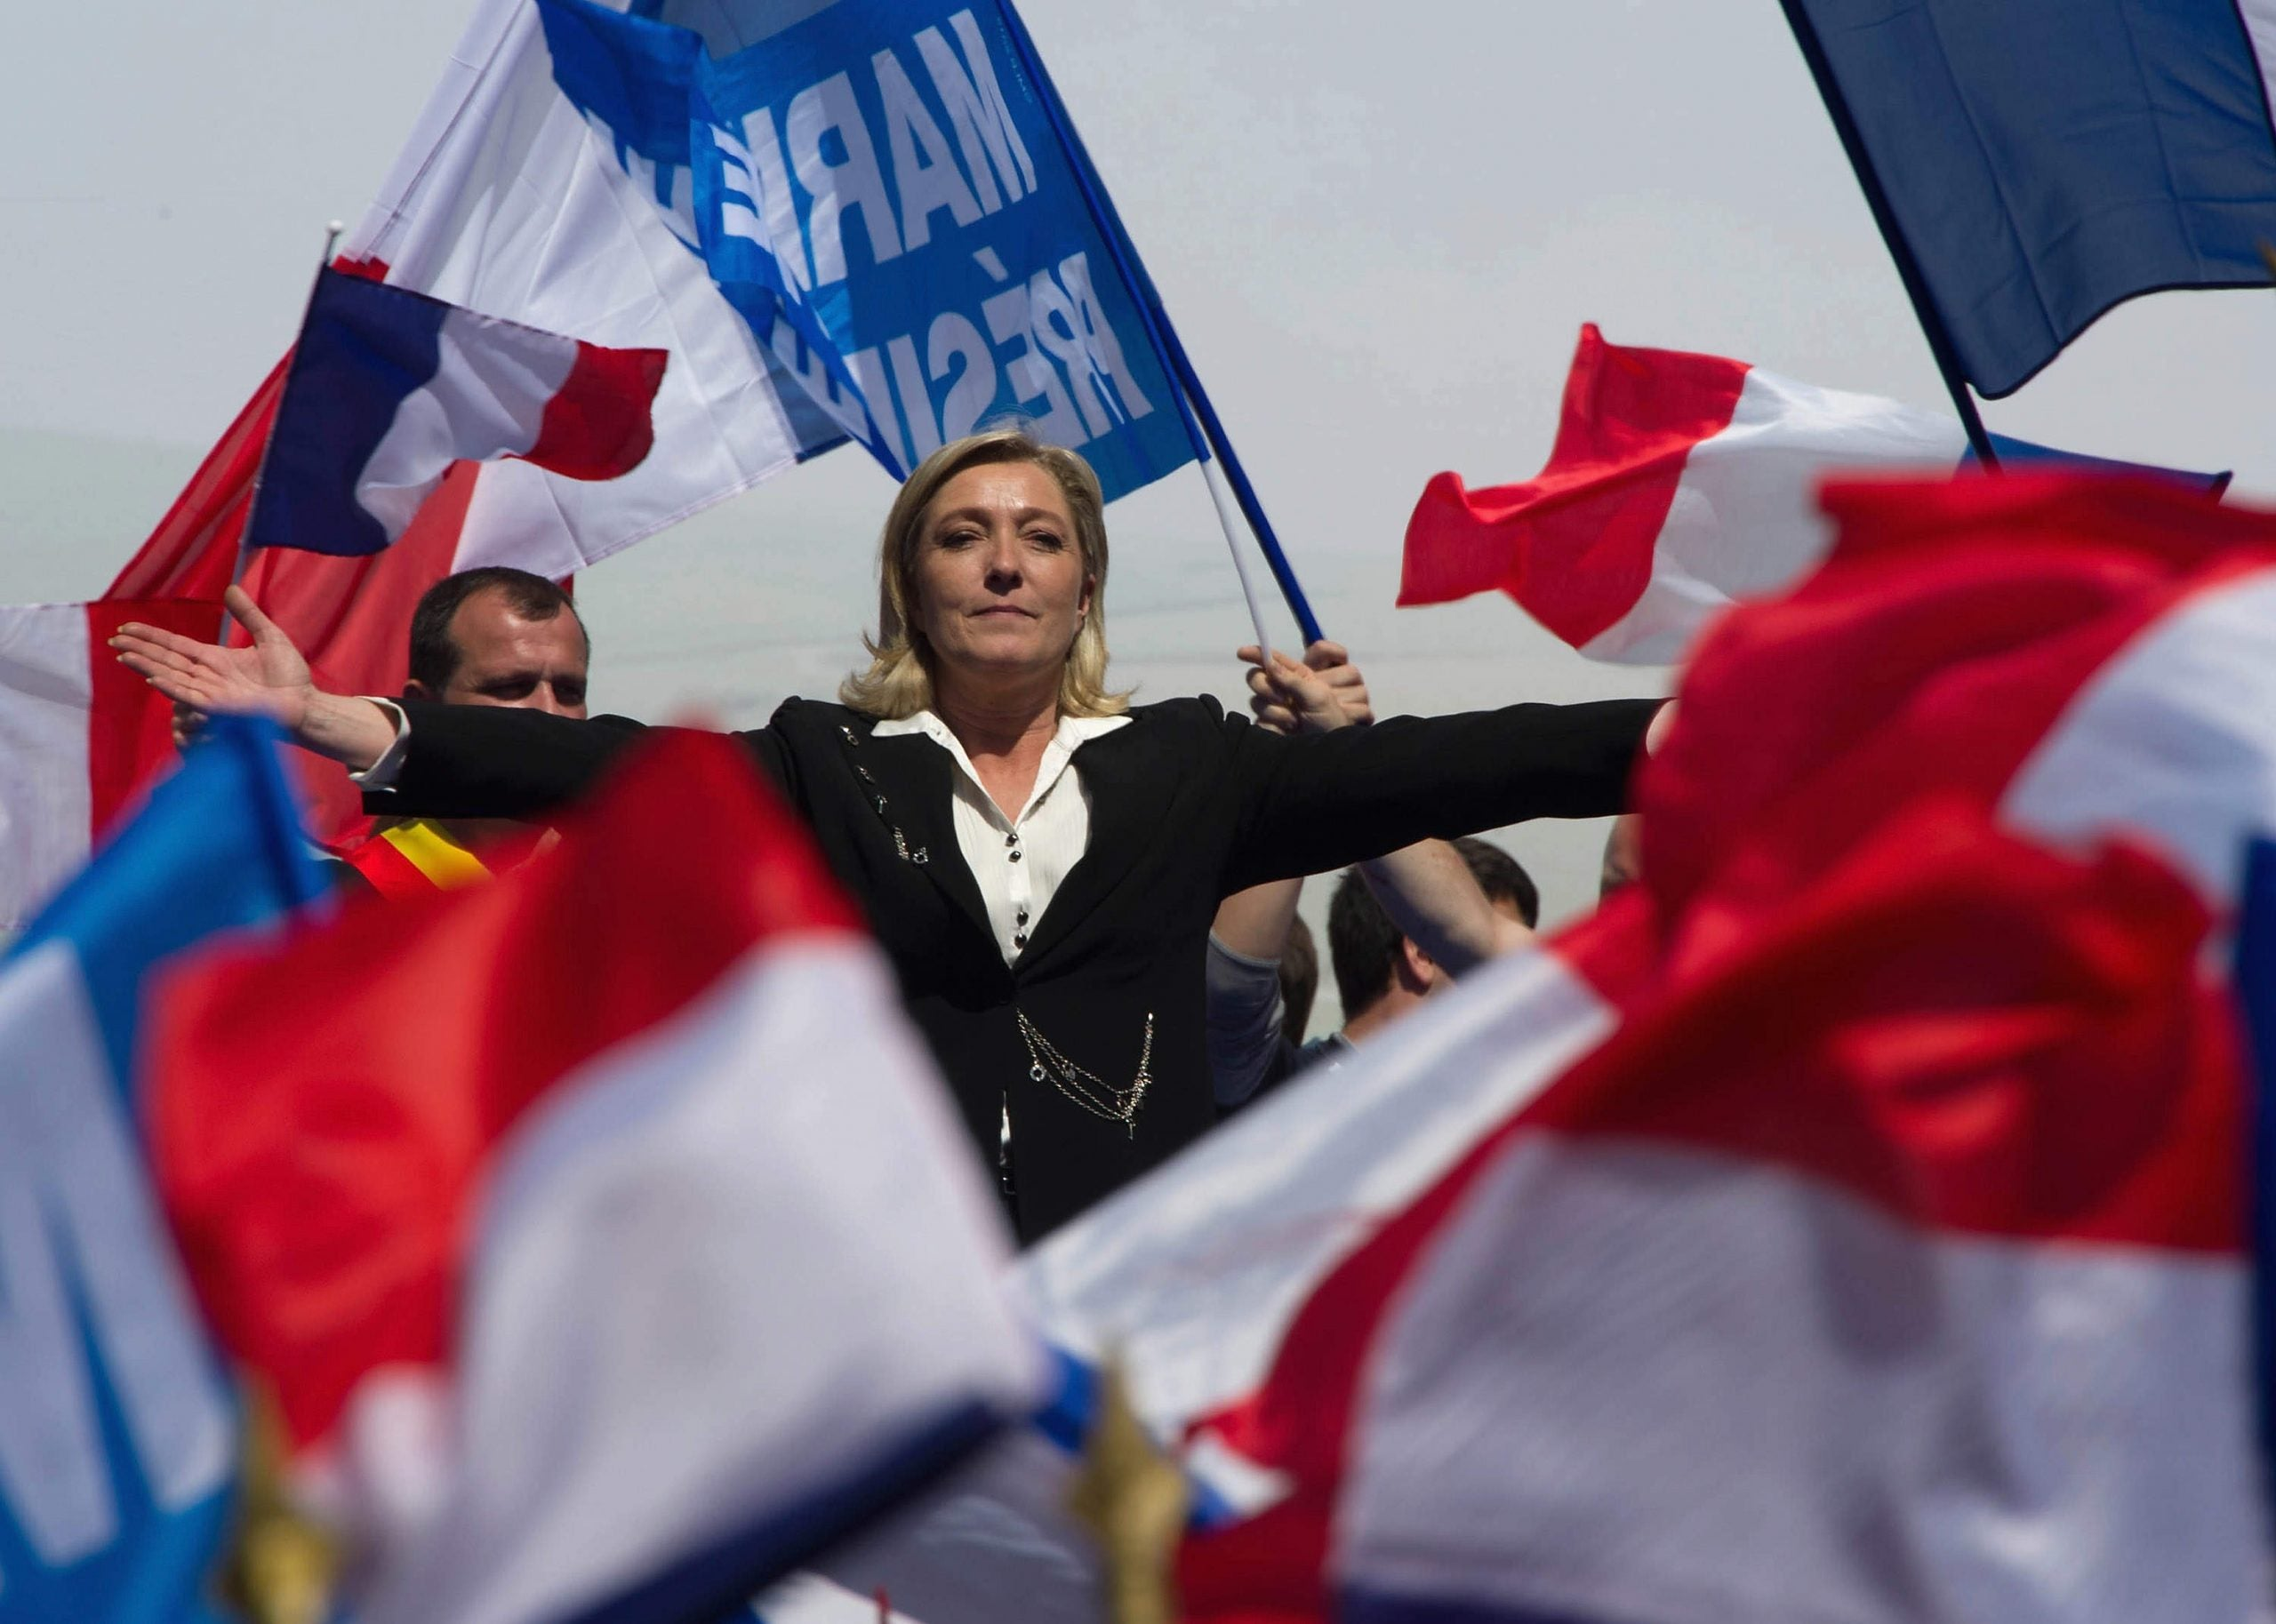 An embarrassing admirer: no one wants to see Theresa May succeed more than Marine Le Pen